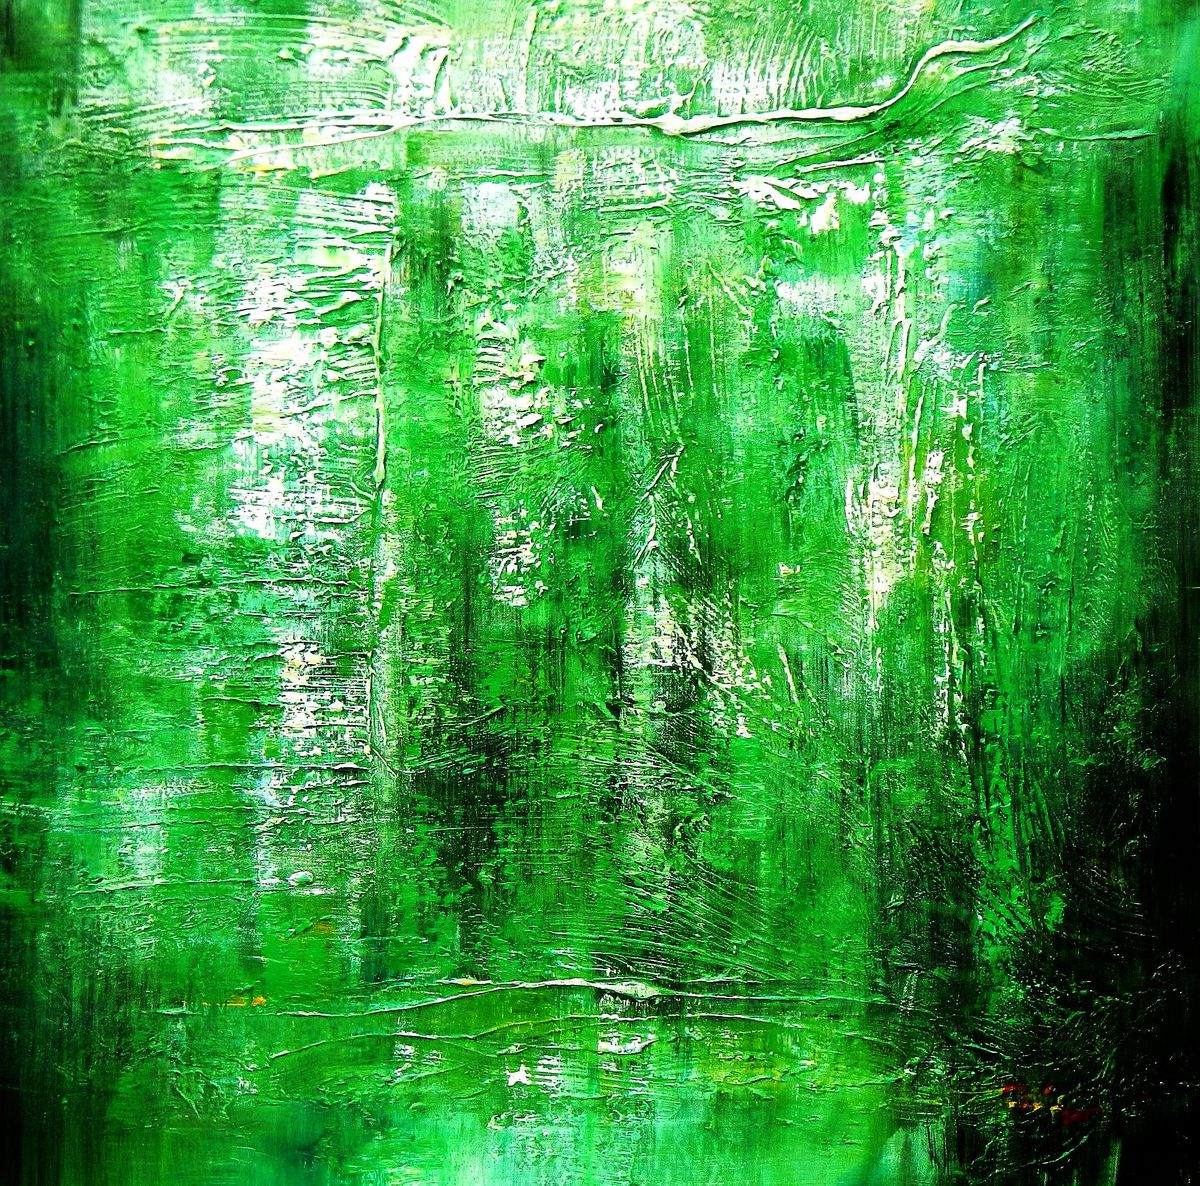 Abstract - Ireland Summer games g94319 80x80cm abstraktes Gemälde